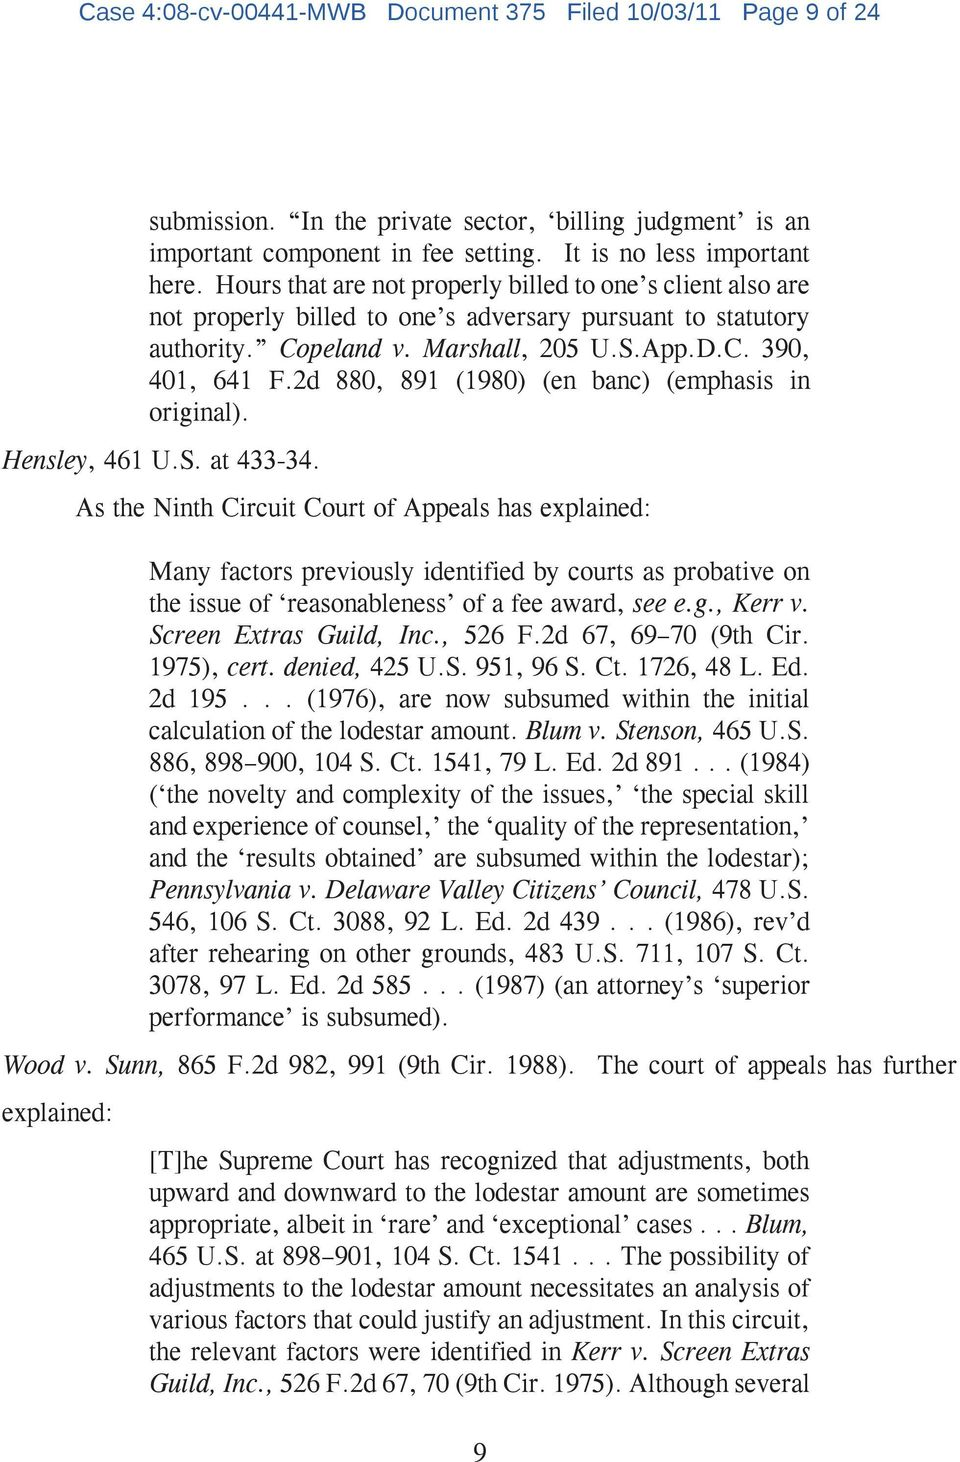 2d 880, 891 (1980) (en banc) (emphasis in original). Hensley, 461 U.S. at 433-34.